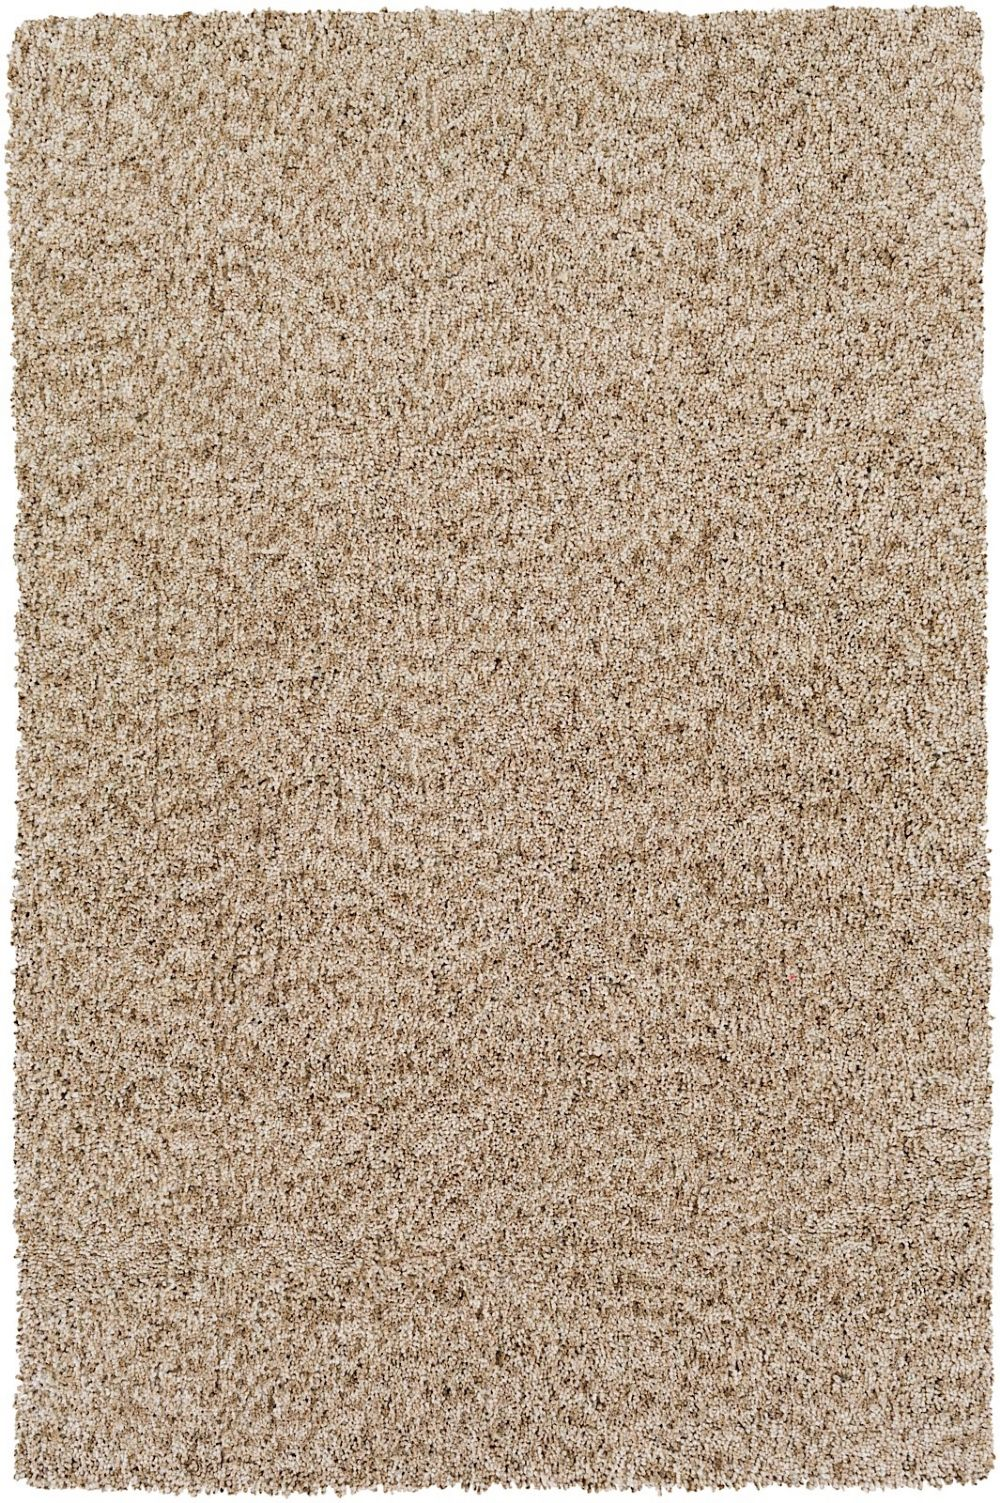 surya charlie shag area rug collection